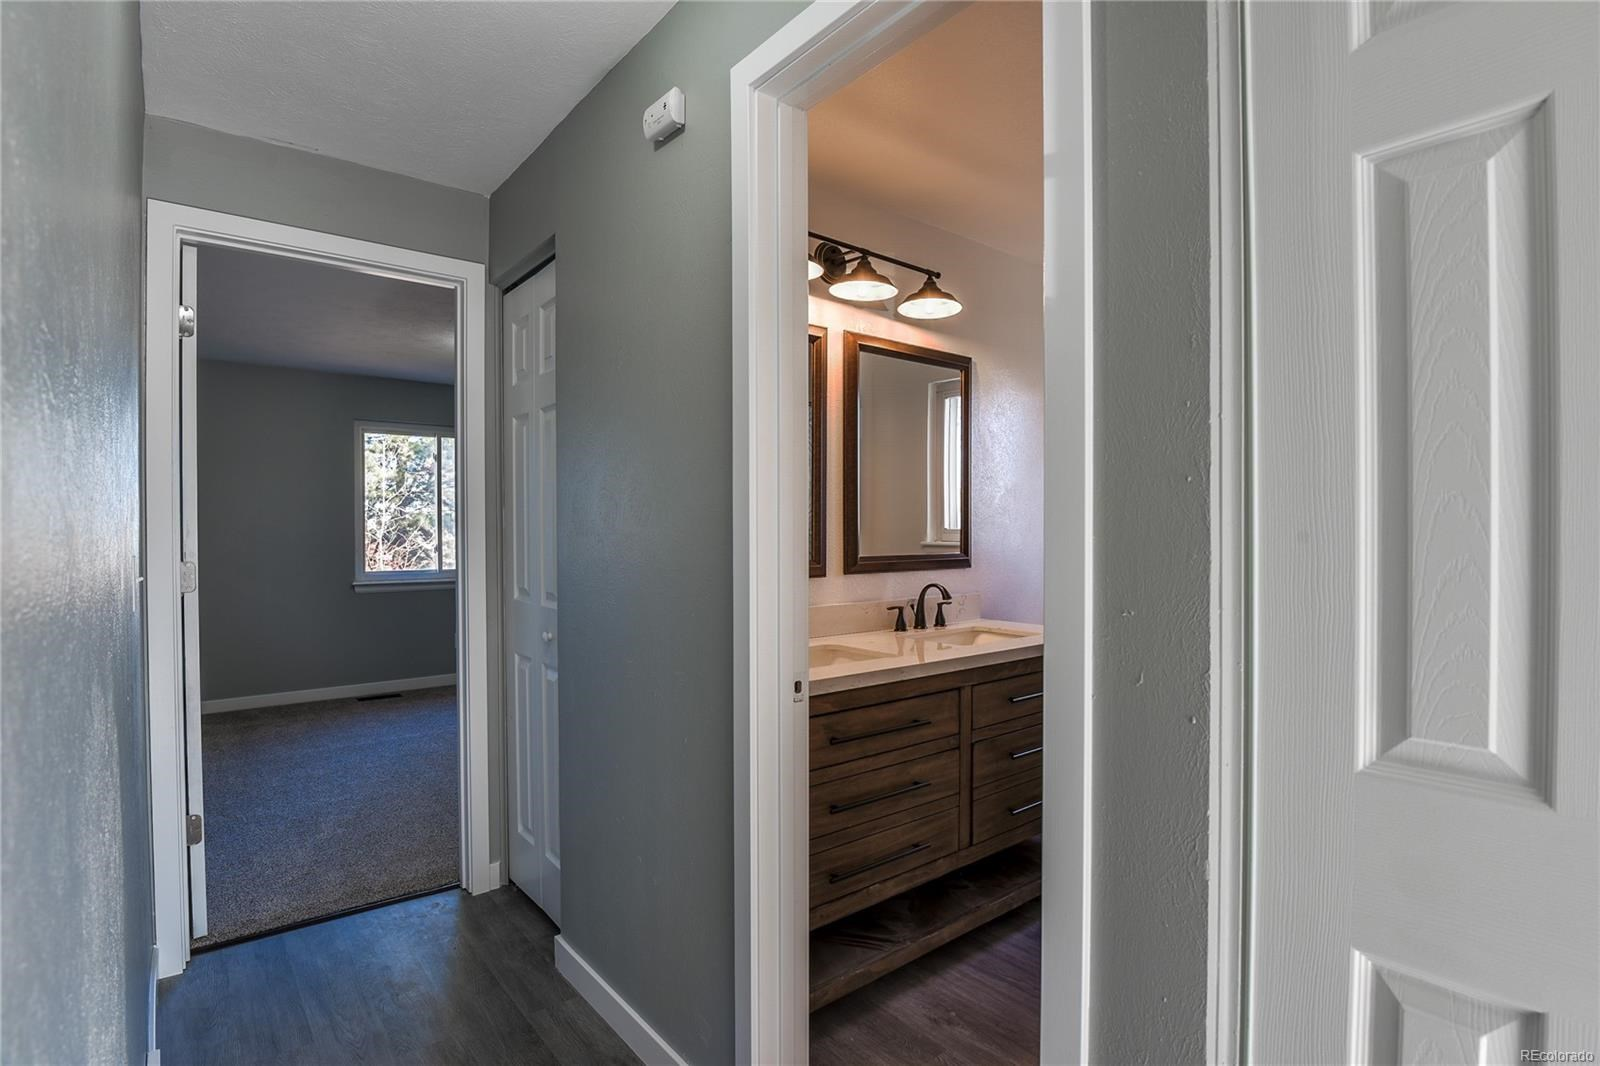 MLS# 8183776 - 9 - 2547 W 104th Circle, Westminster, CO 80234